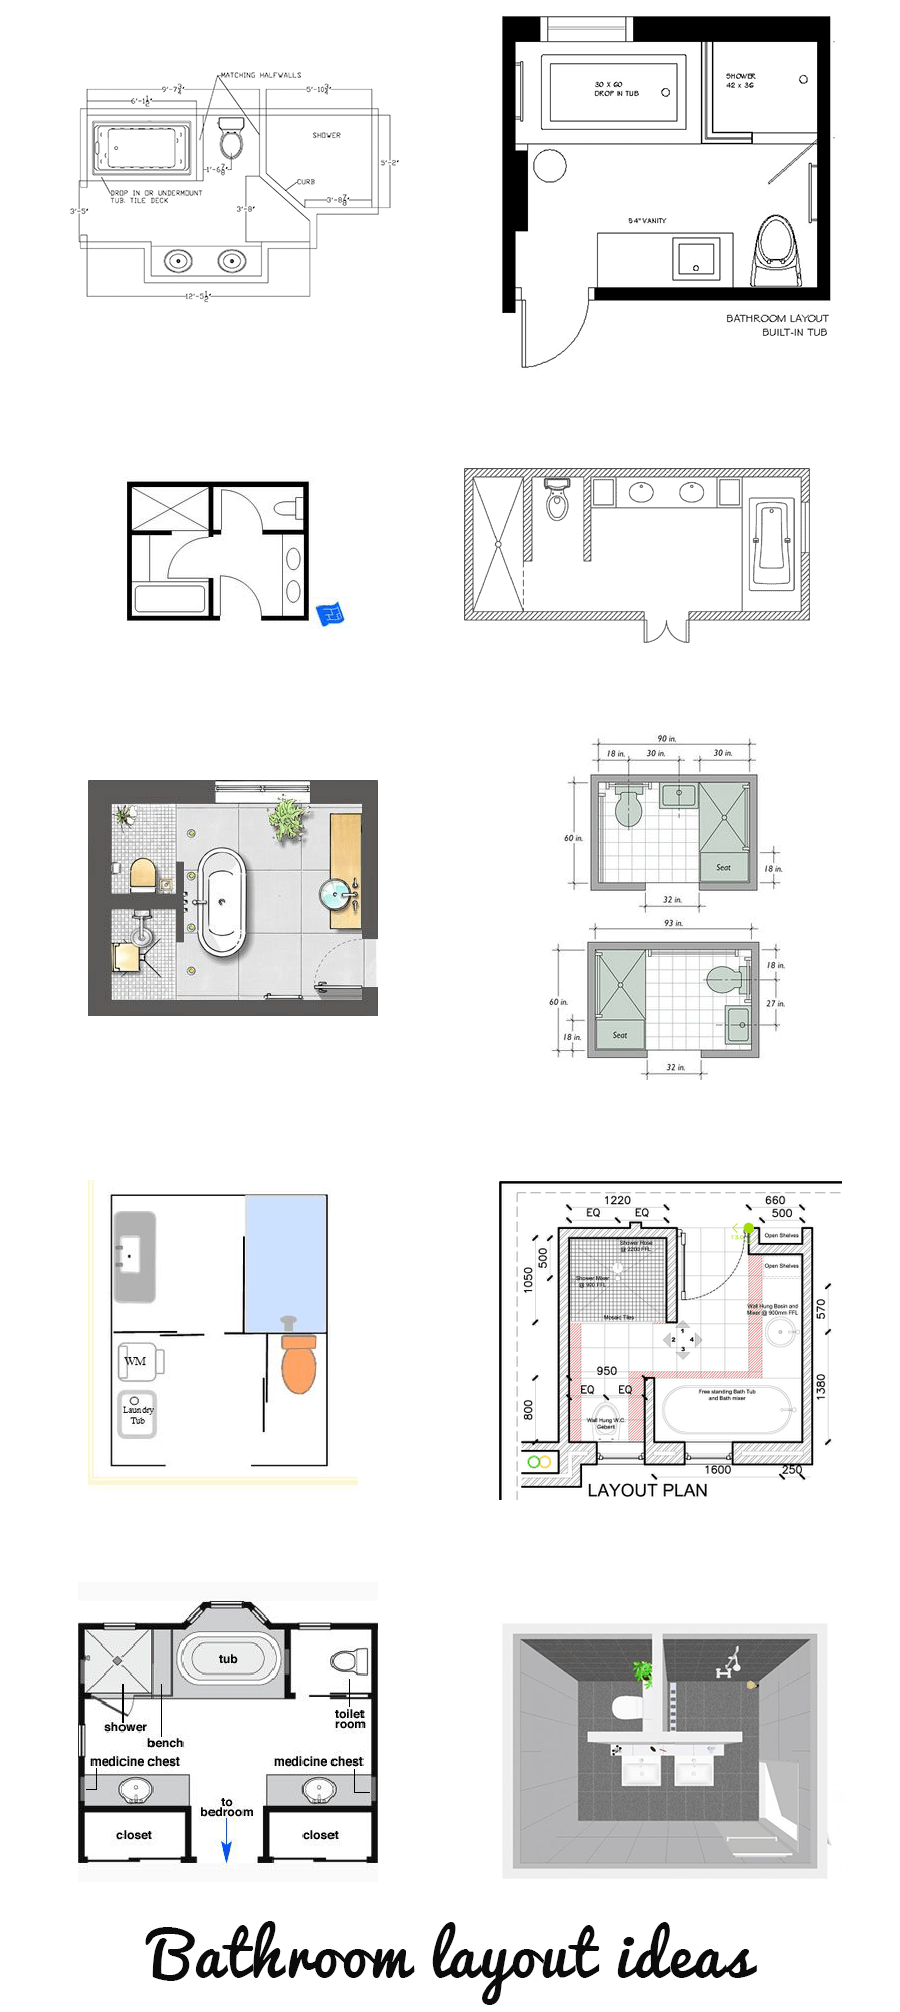 Looking for a bathroom layout for How to design a bathroom floor plan